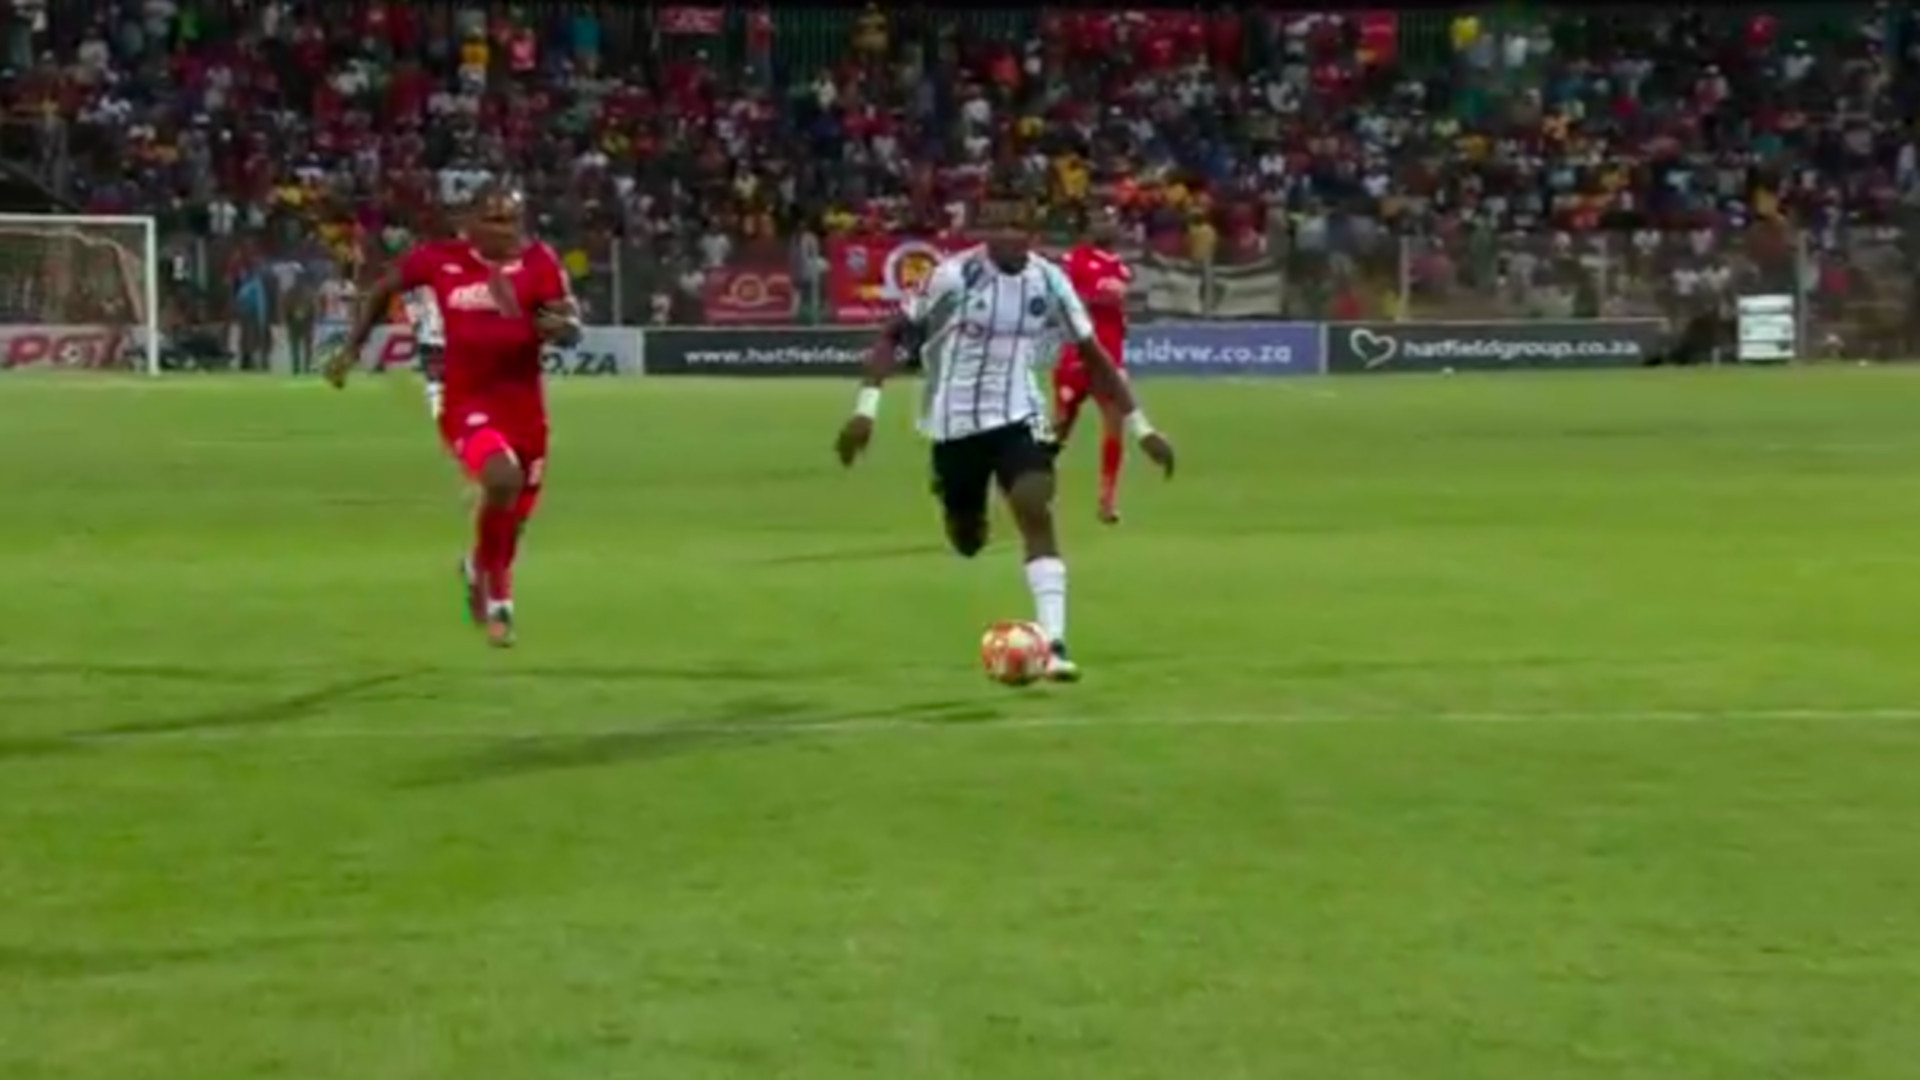 Absa Premiership 2019/20 | Pirates goal